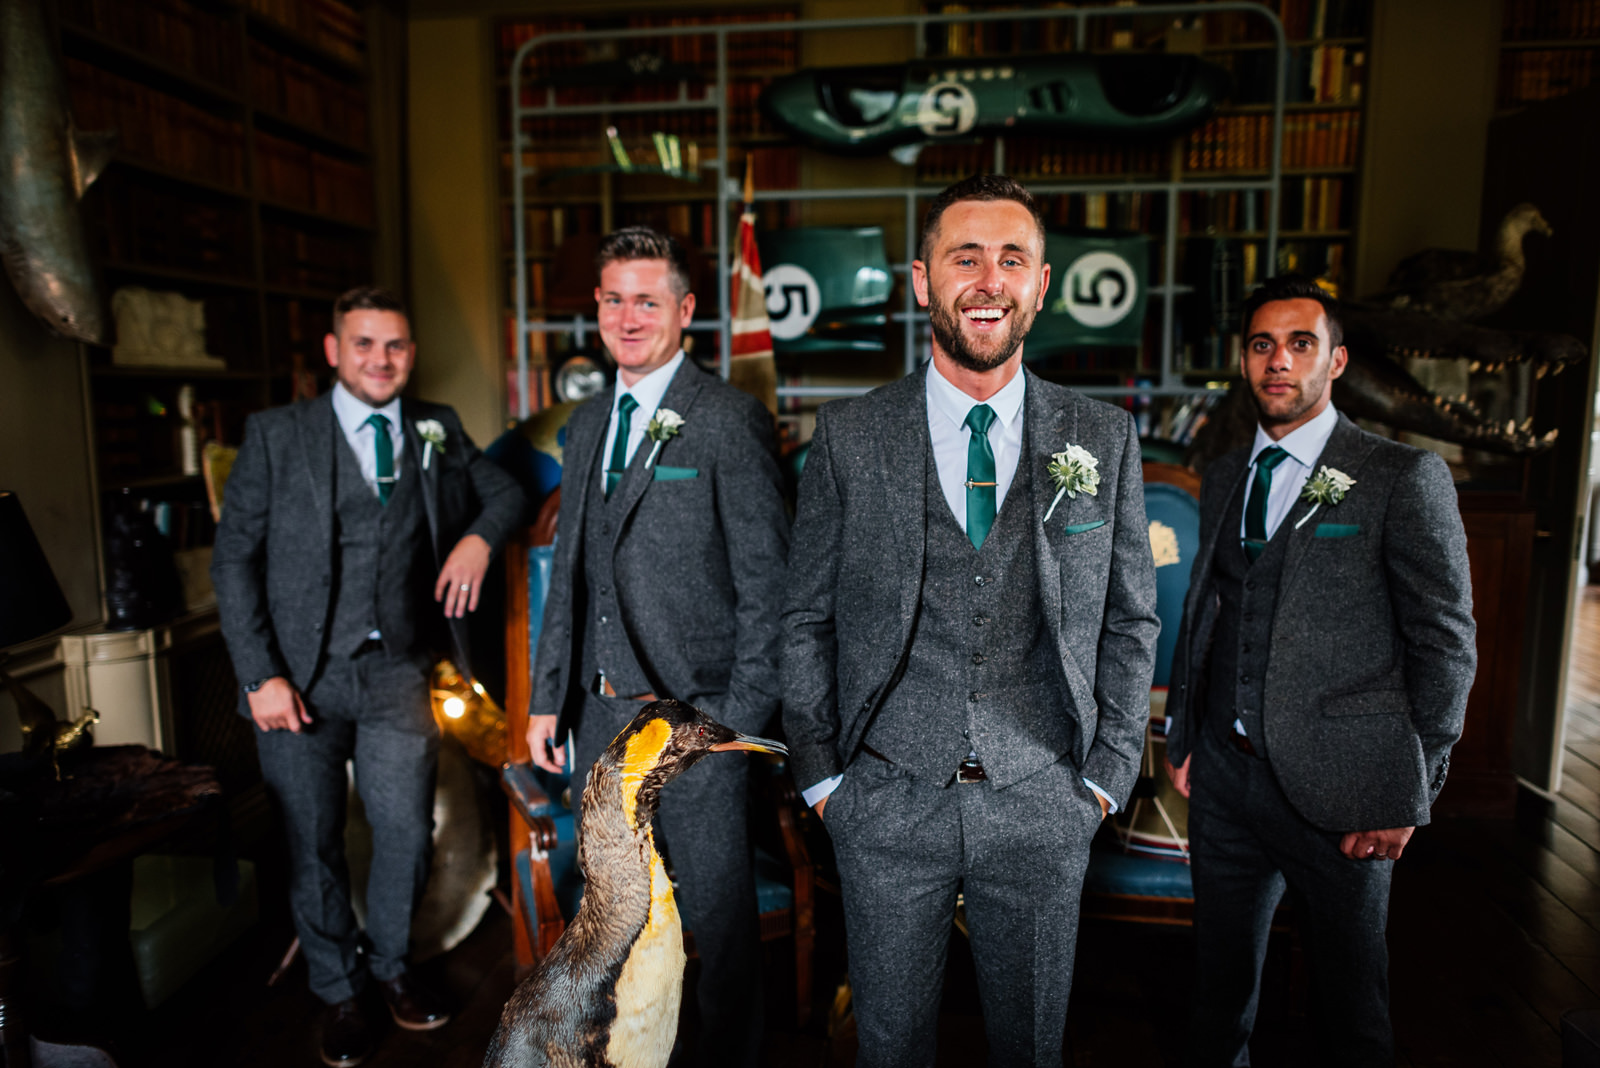 groom and groomsmen at Aynho Park wedding